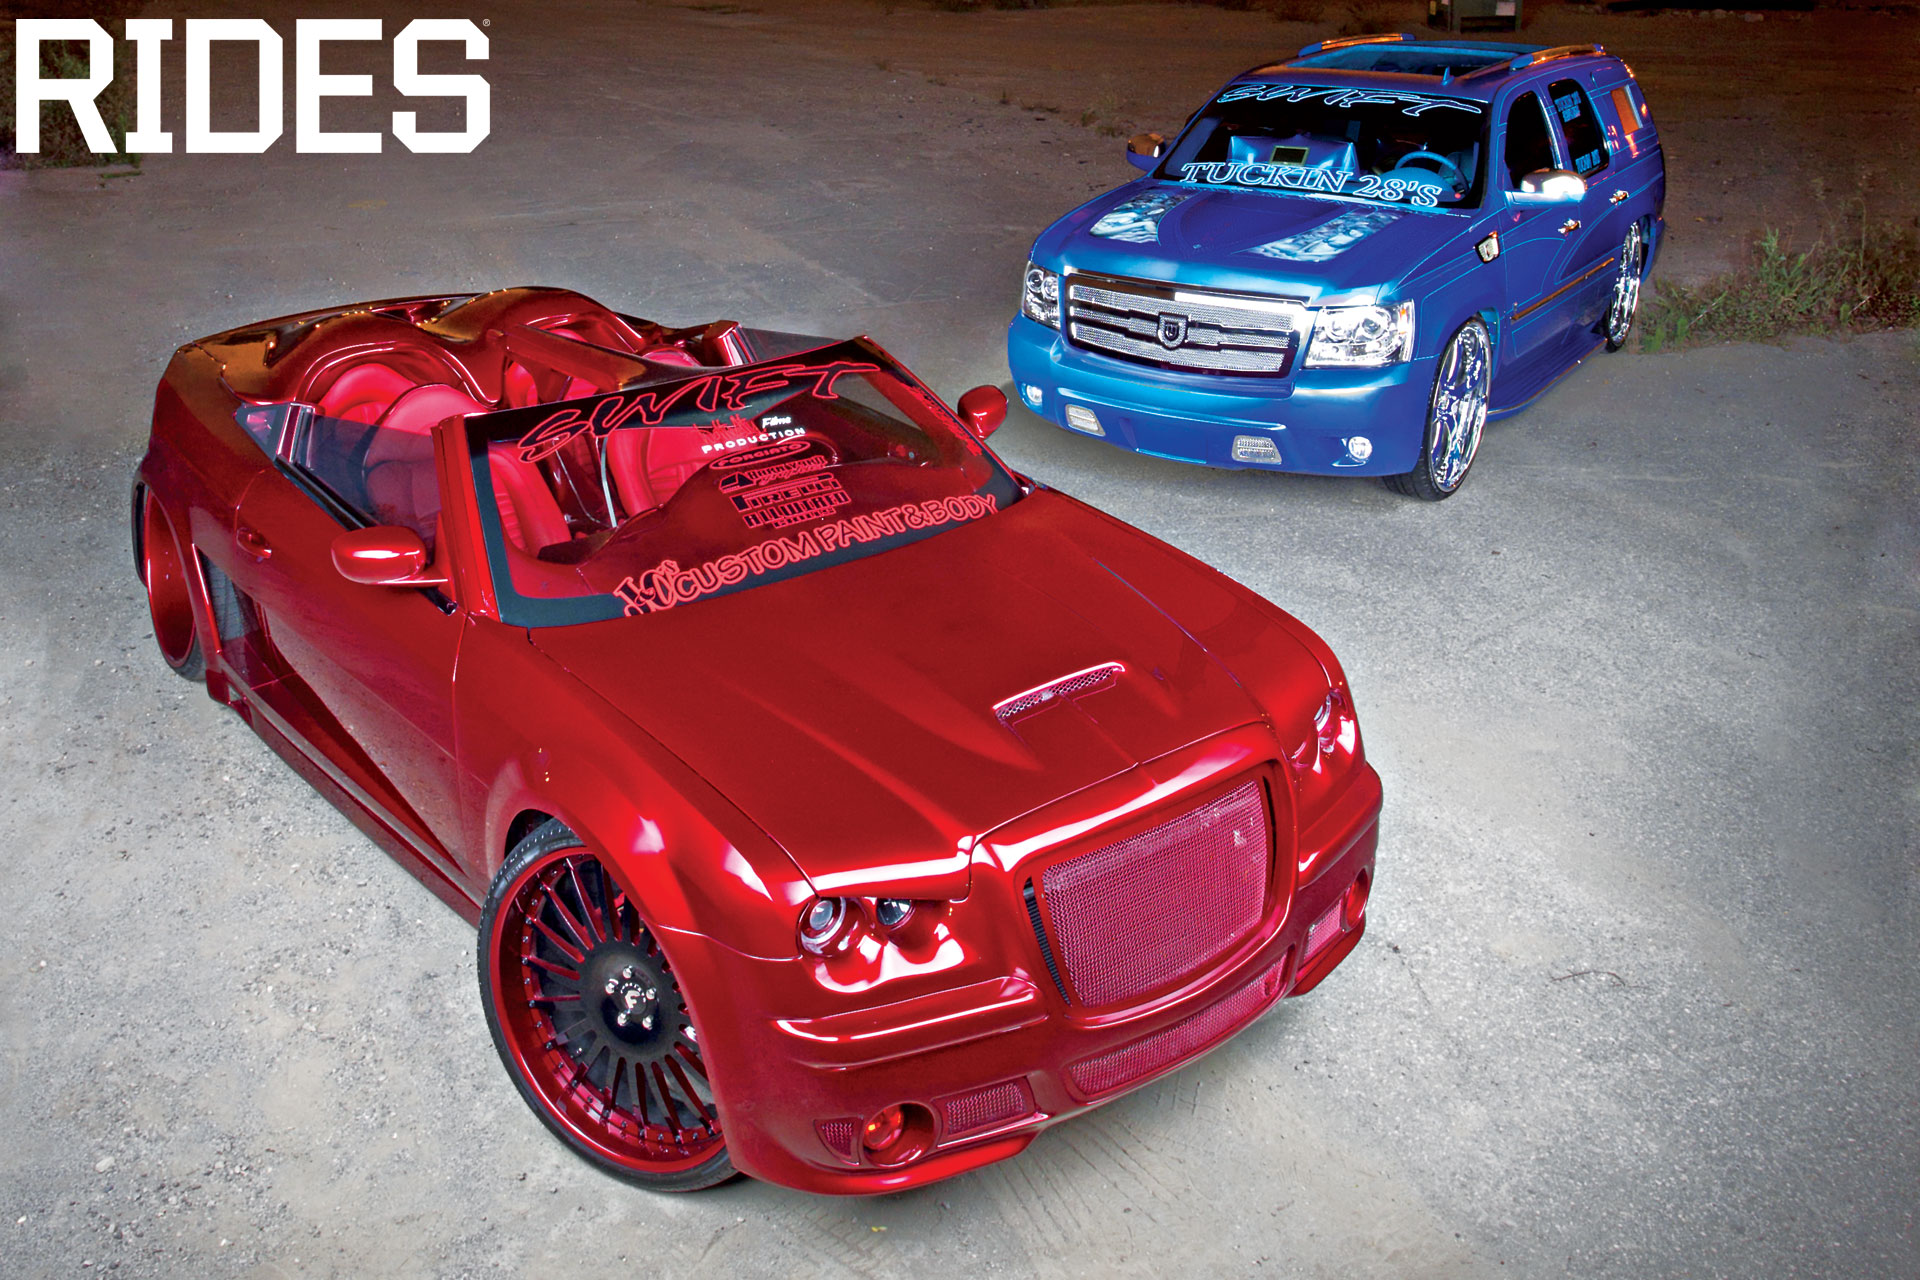 rides cars-50th-issue-wallpaper